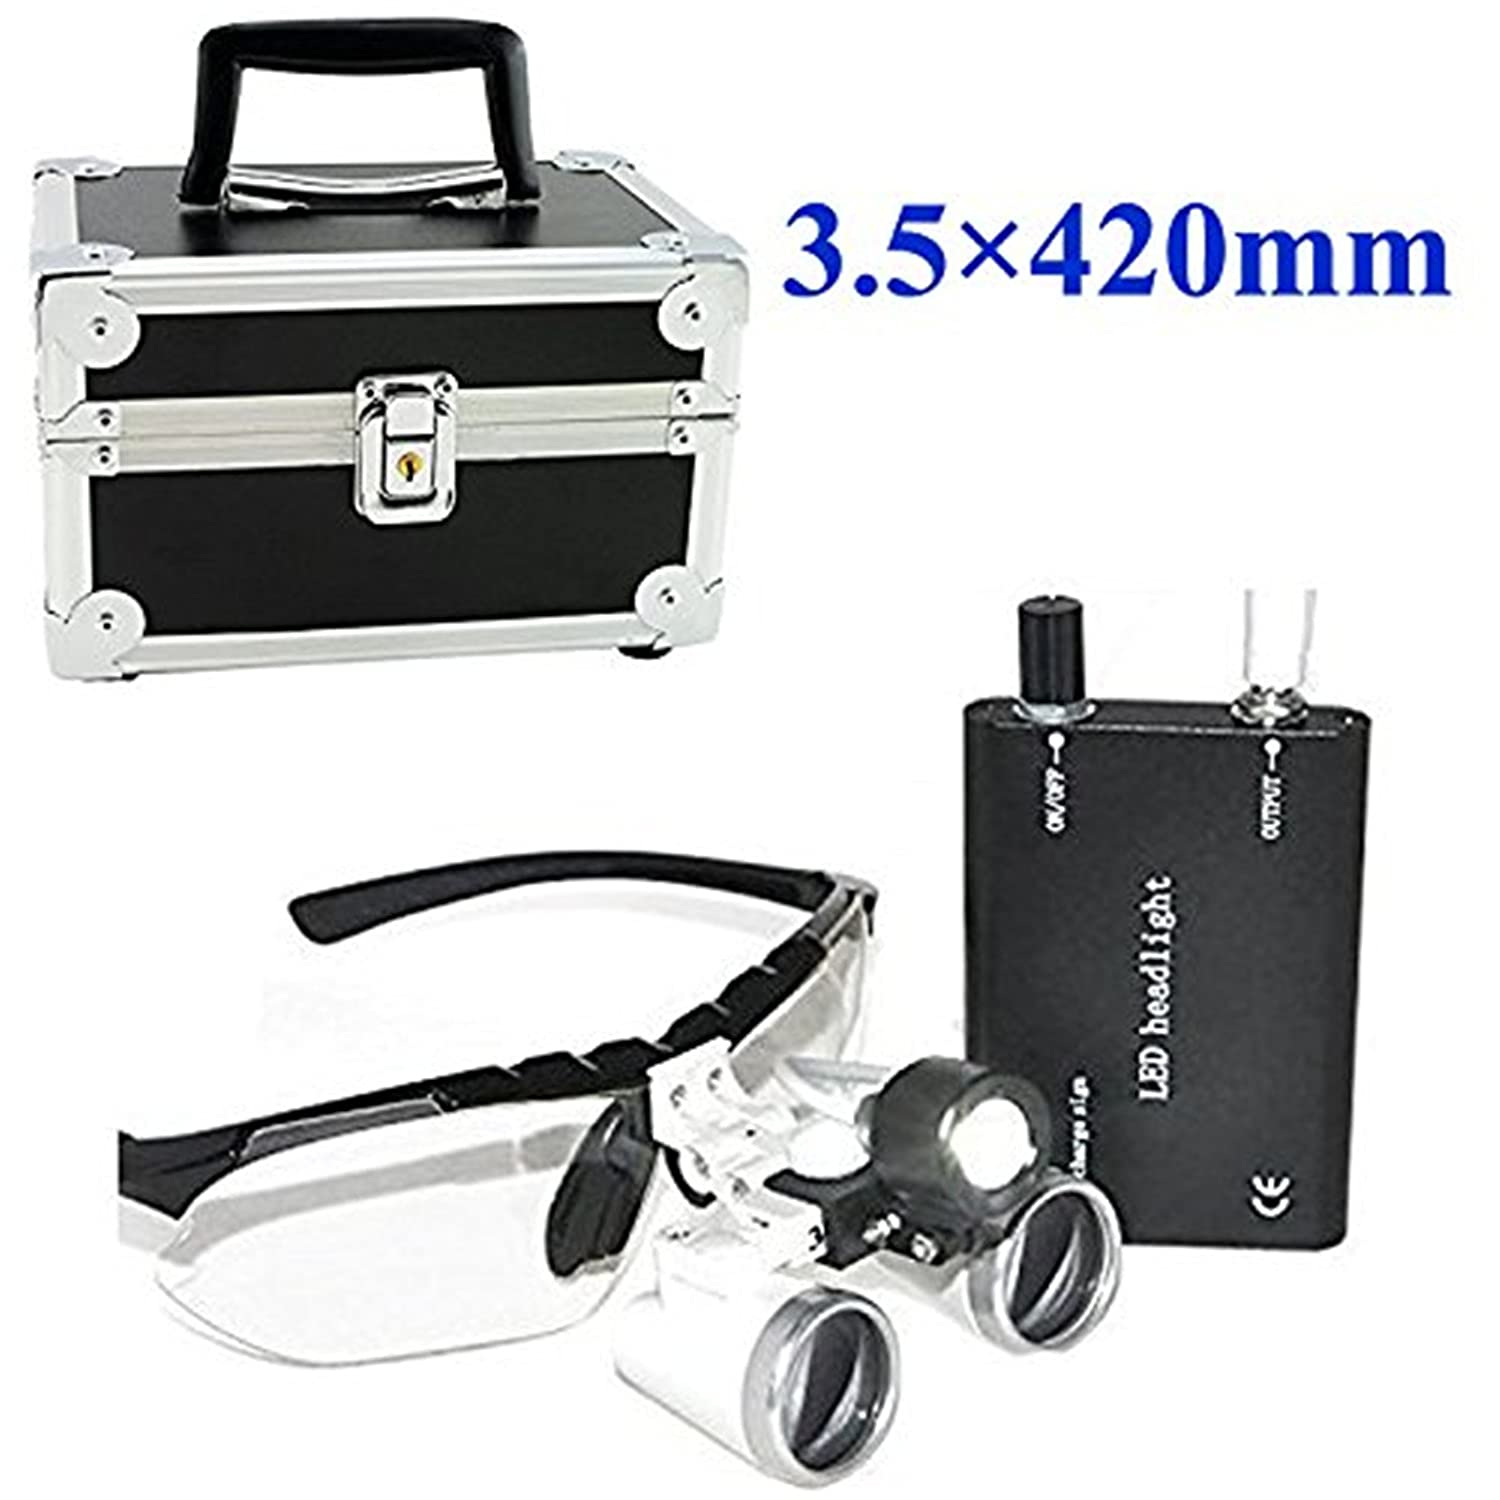 Denshine® Dental Medical Surgical Binocular Loupes Optical Glass Loupe 3.5x 420mm + LED Head Light Lamp + + Aluminum Case